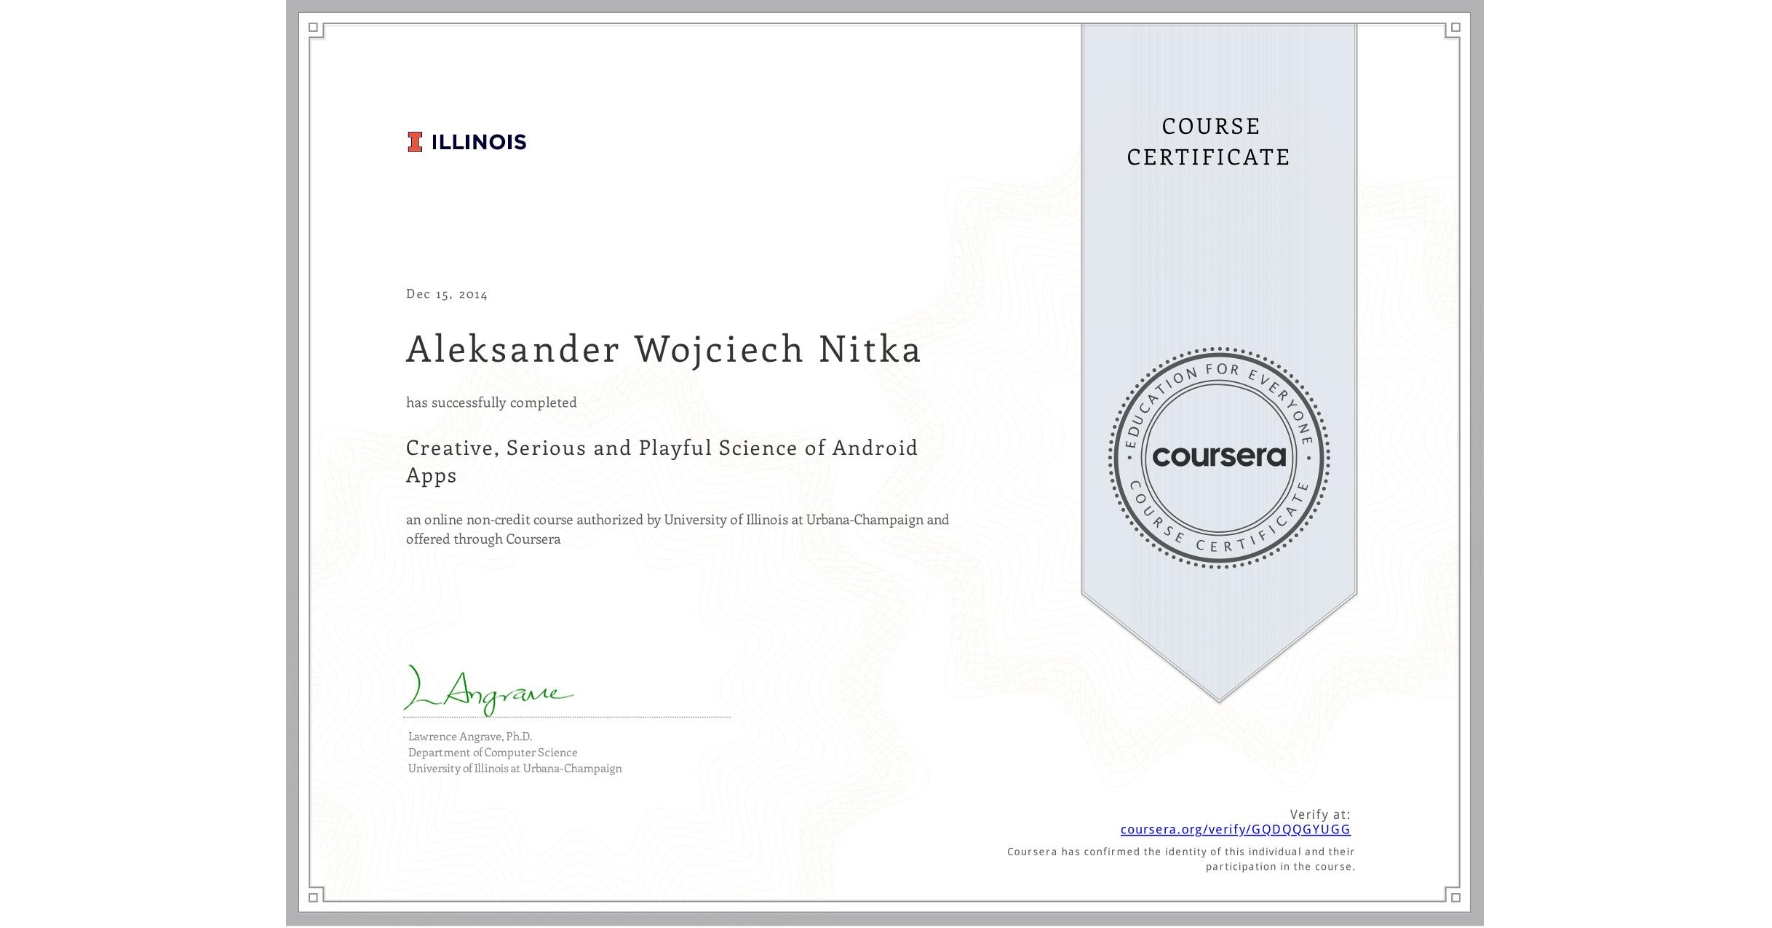 View certificate for Aleksander Wojciech Nitka, Creative, Serious and Playful Science of Android Apps, an online non-credit course authorized by University of Illinois at Urbana-Champaign and offered through Coursera